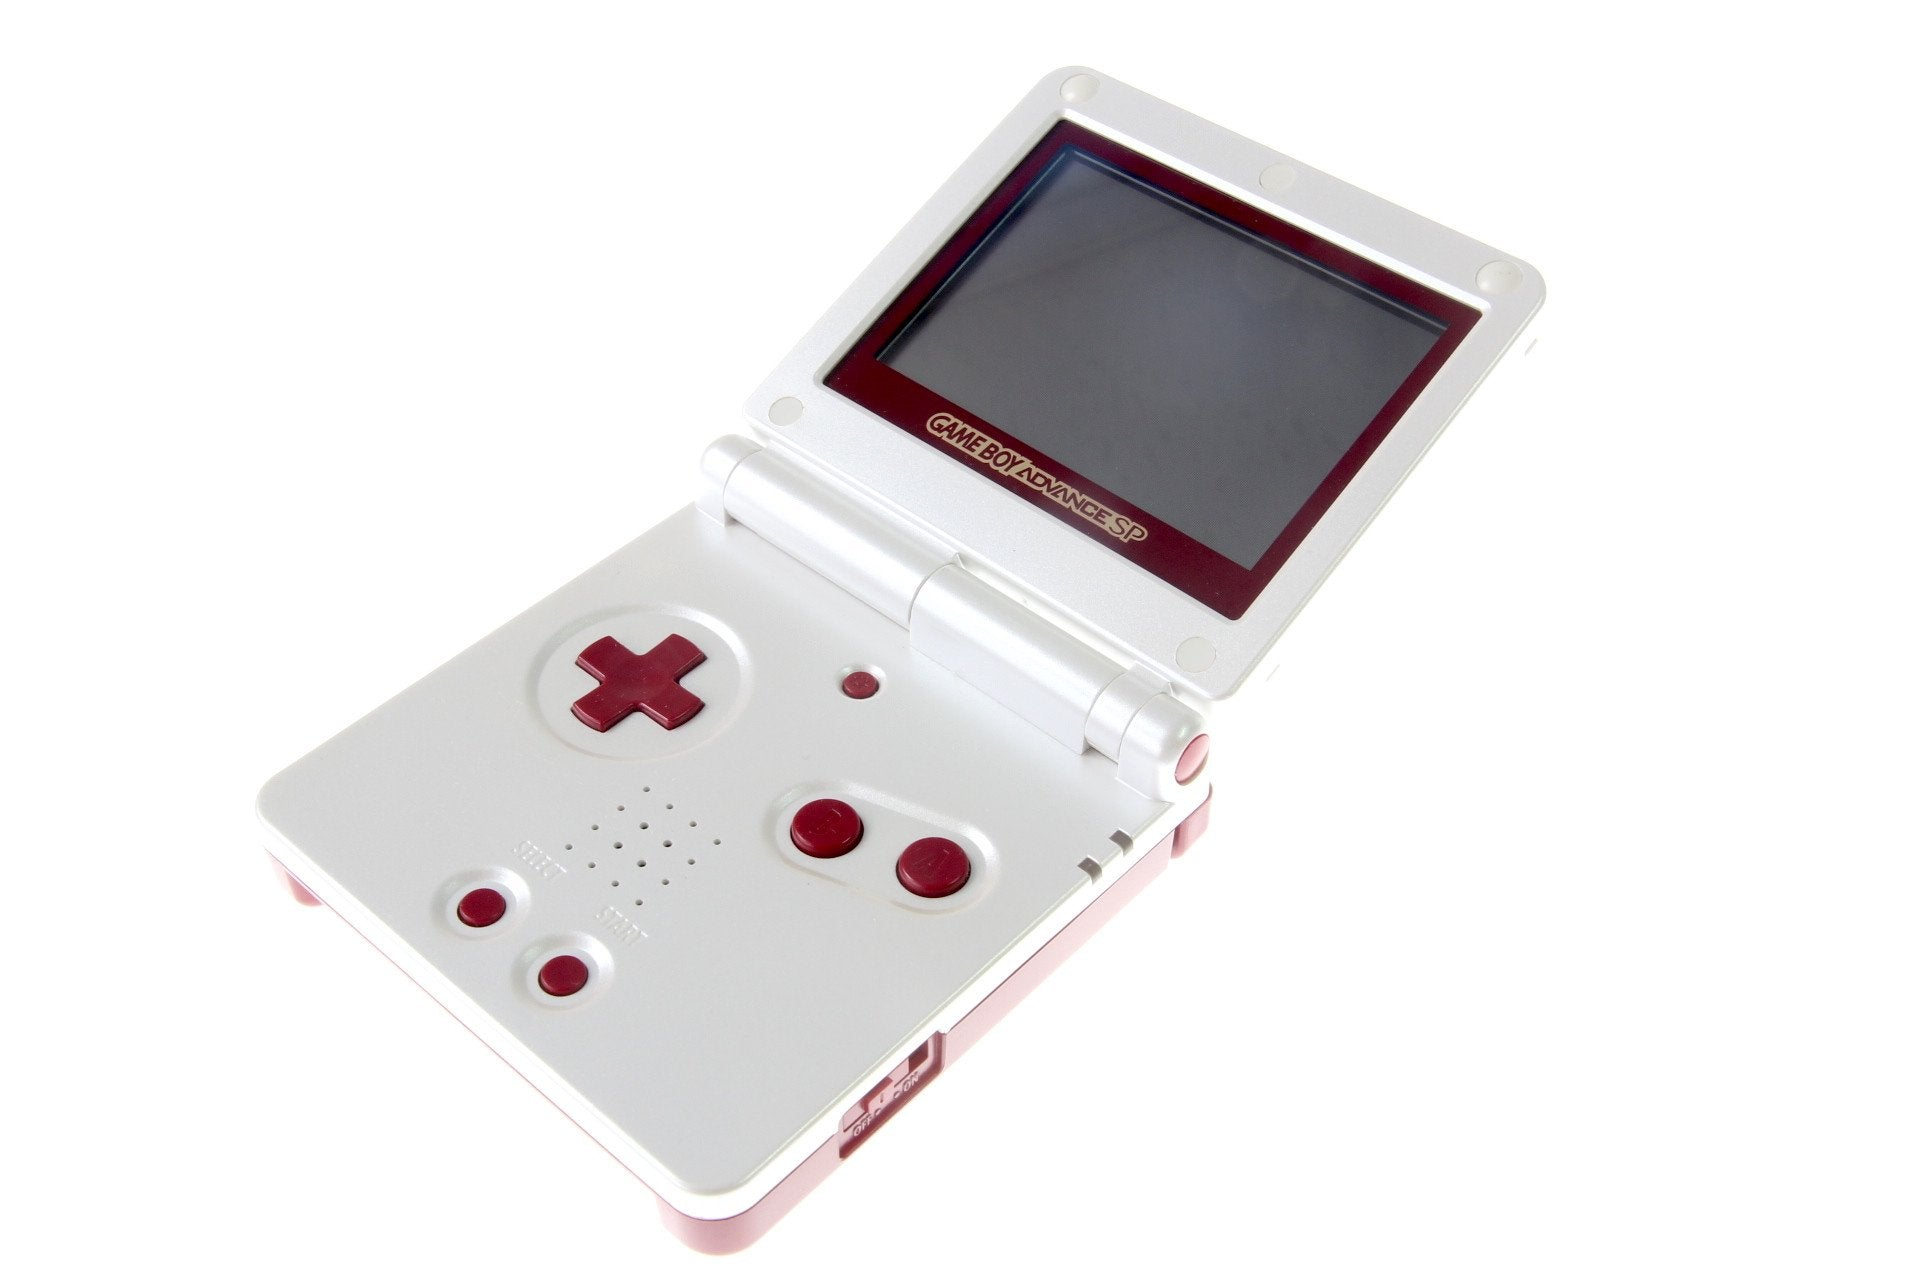 Nintendo Game Boy Advance SP Famicom Color - LIMITED EDITION